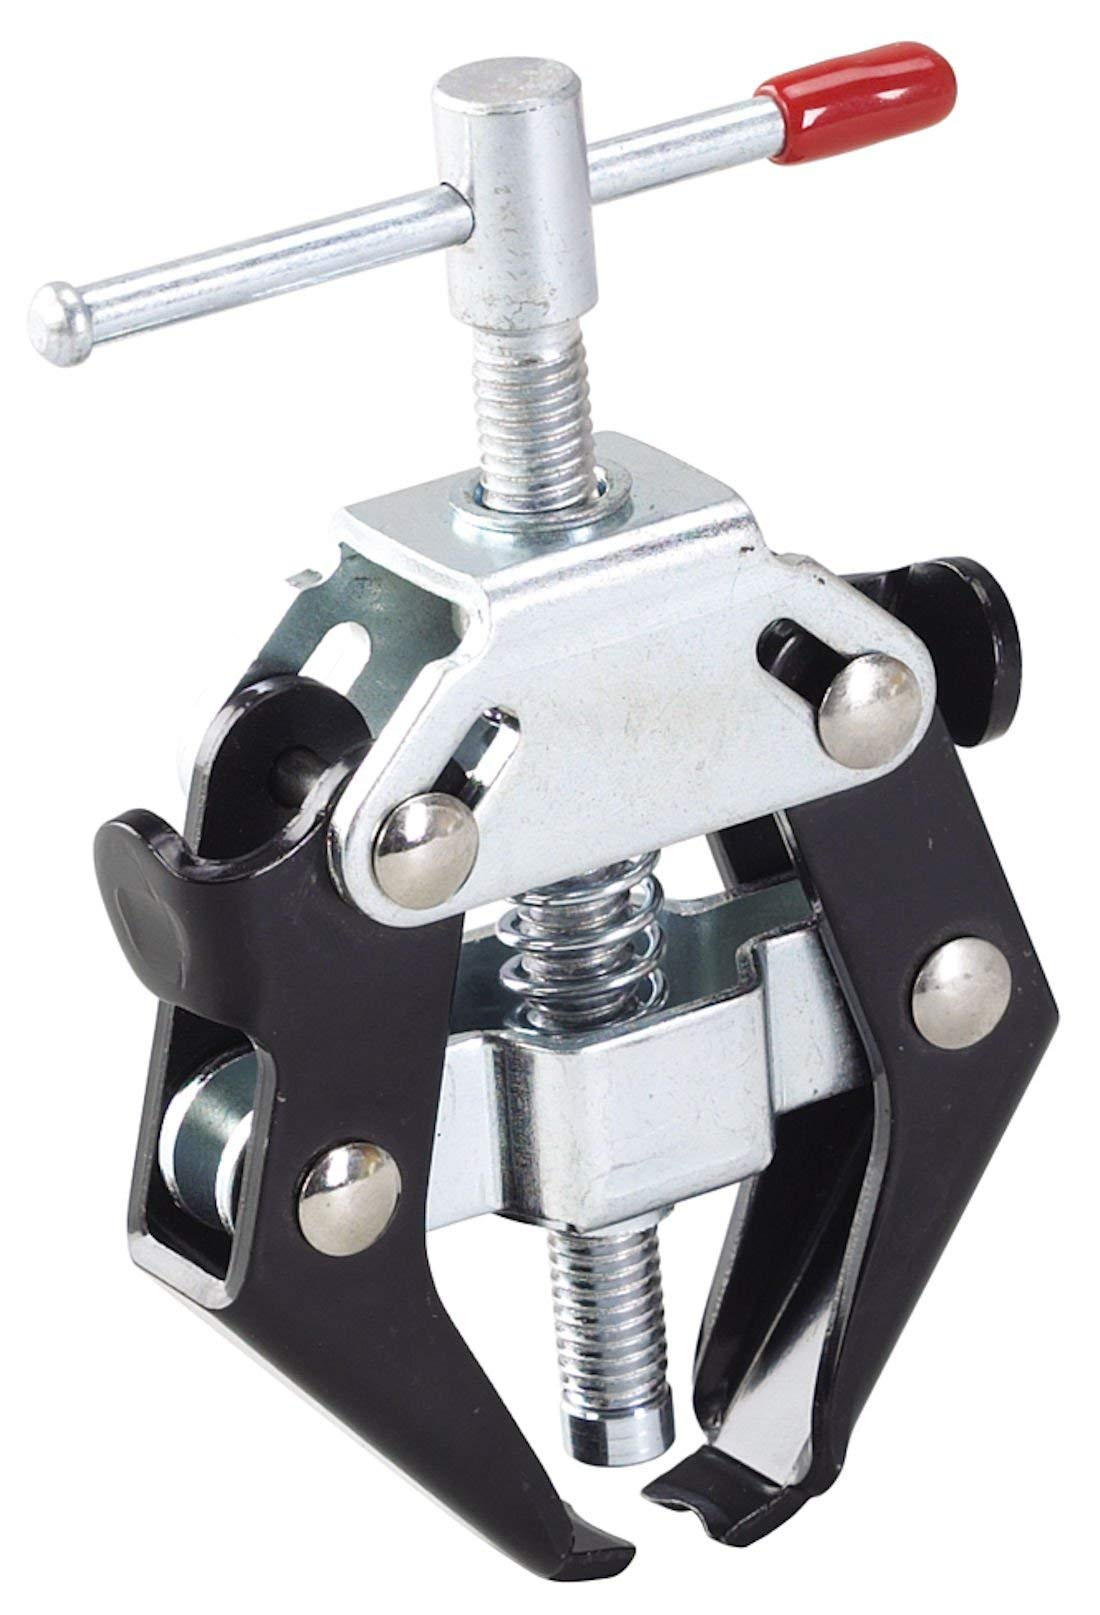 Made in The USA Remove Stock Press Pulley Safely Pulley Removal Tool American Products Limited Quick Puller